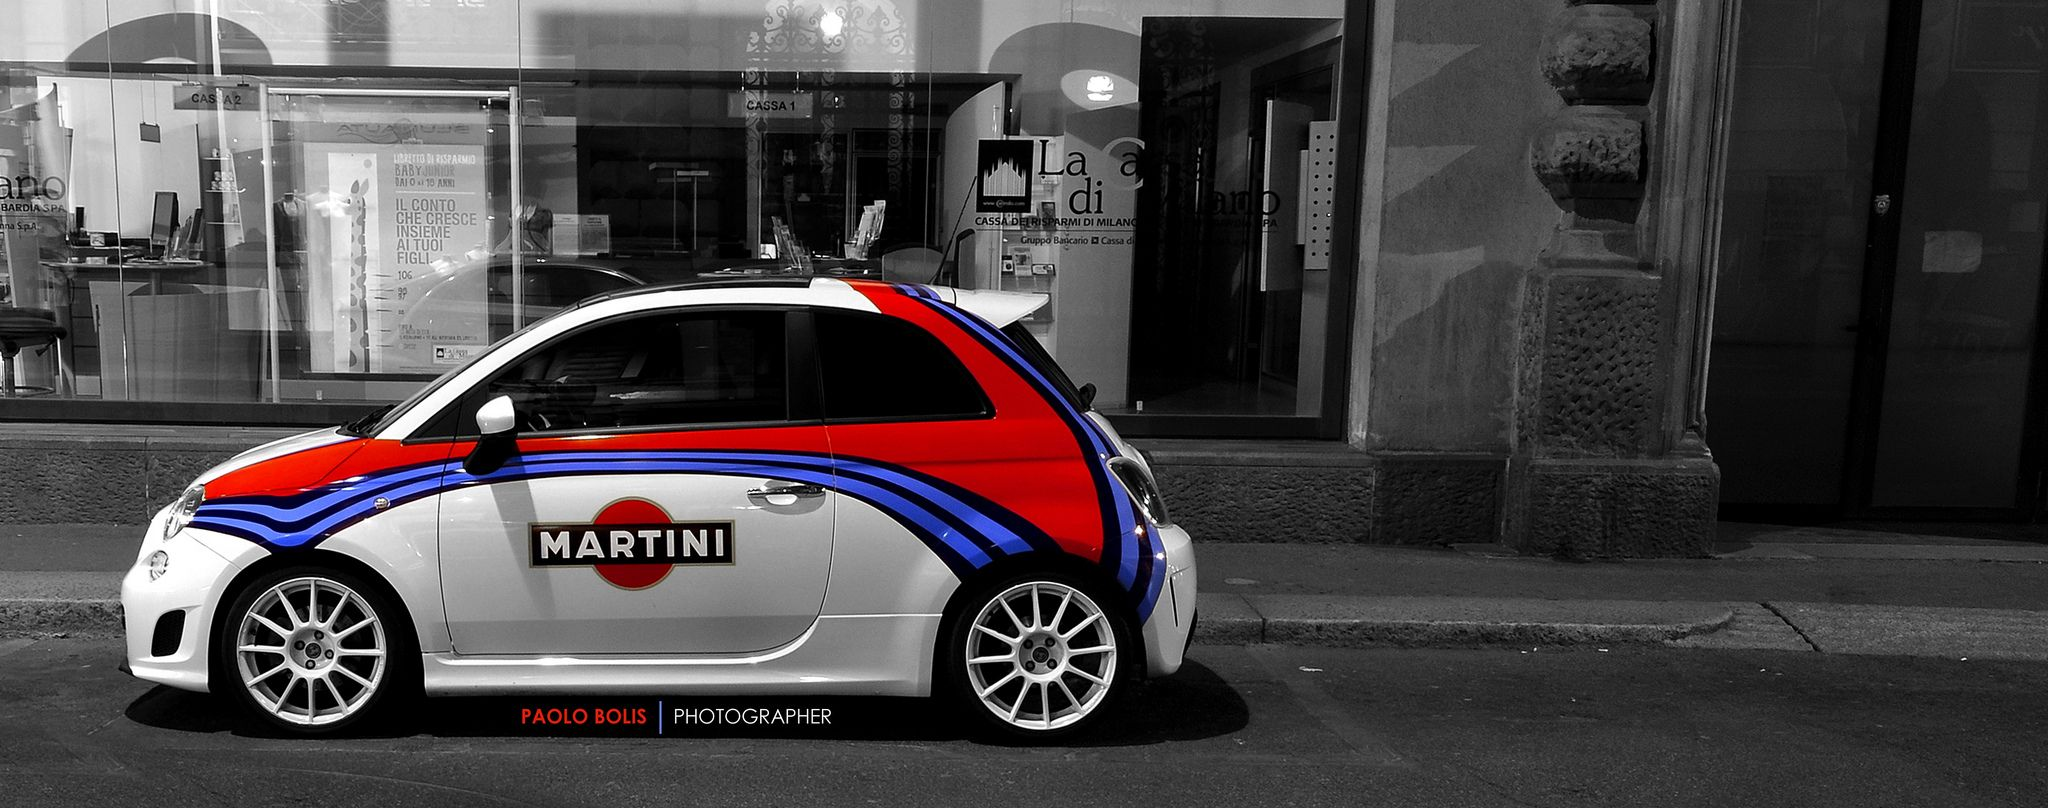 https://flic.kr/p/bCcEcm | Fiat 500 Abarth Martini | Spotted in Milan, Italy